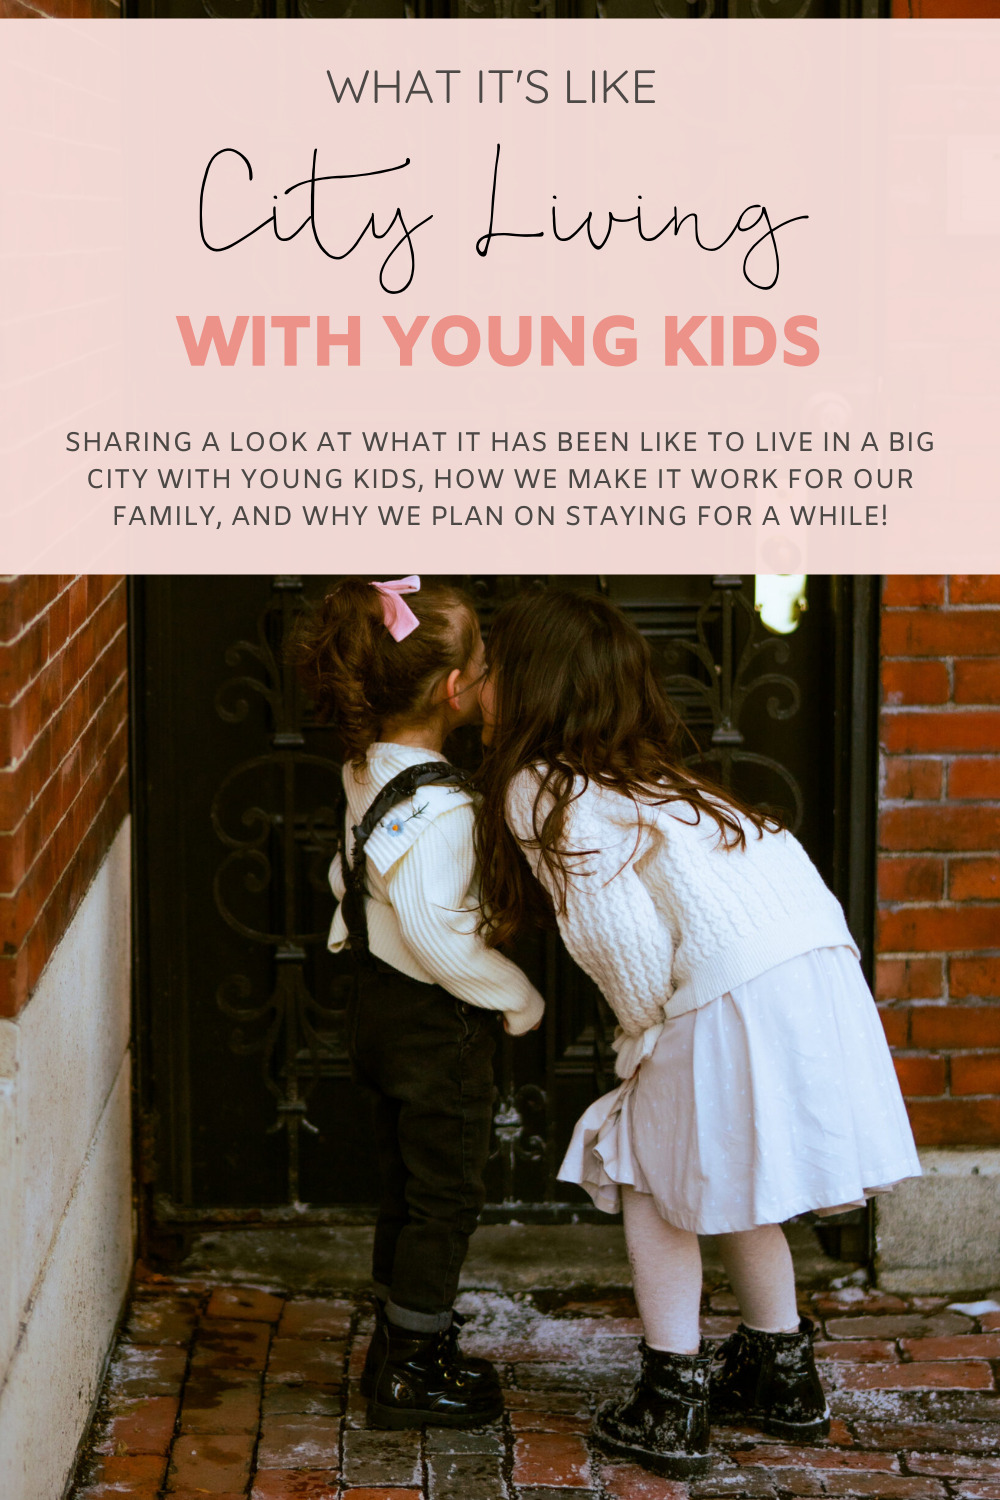 an older sister kissing the cheeks of her younger sister showing Living in a Big City With Young Kids